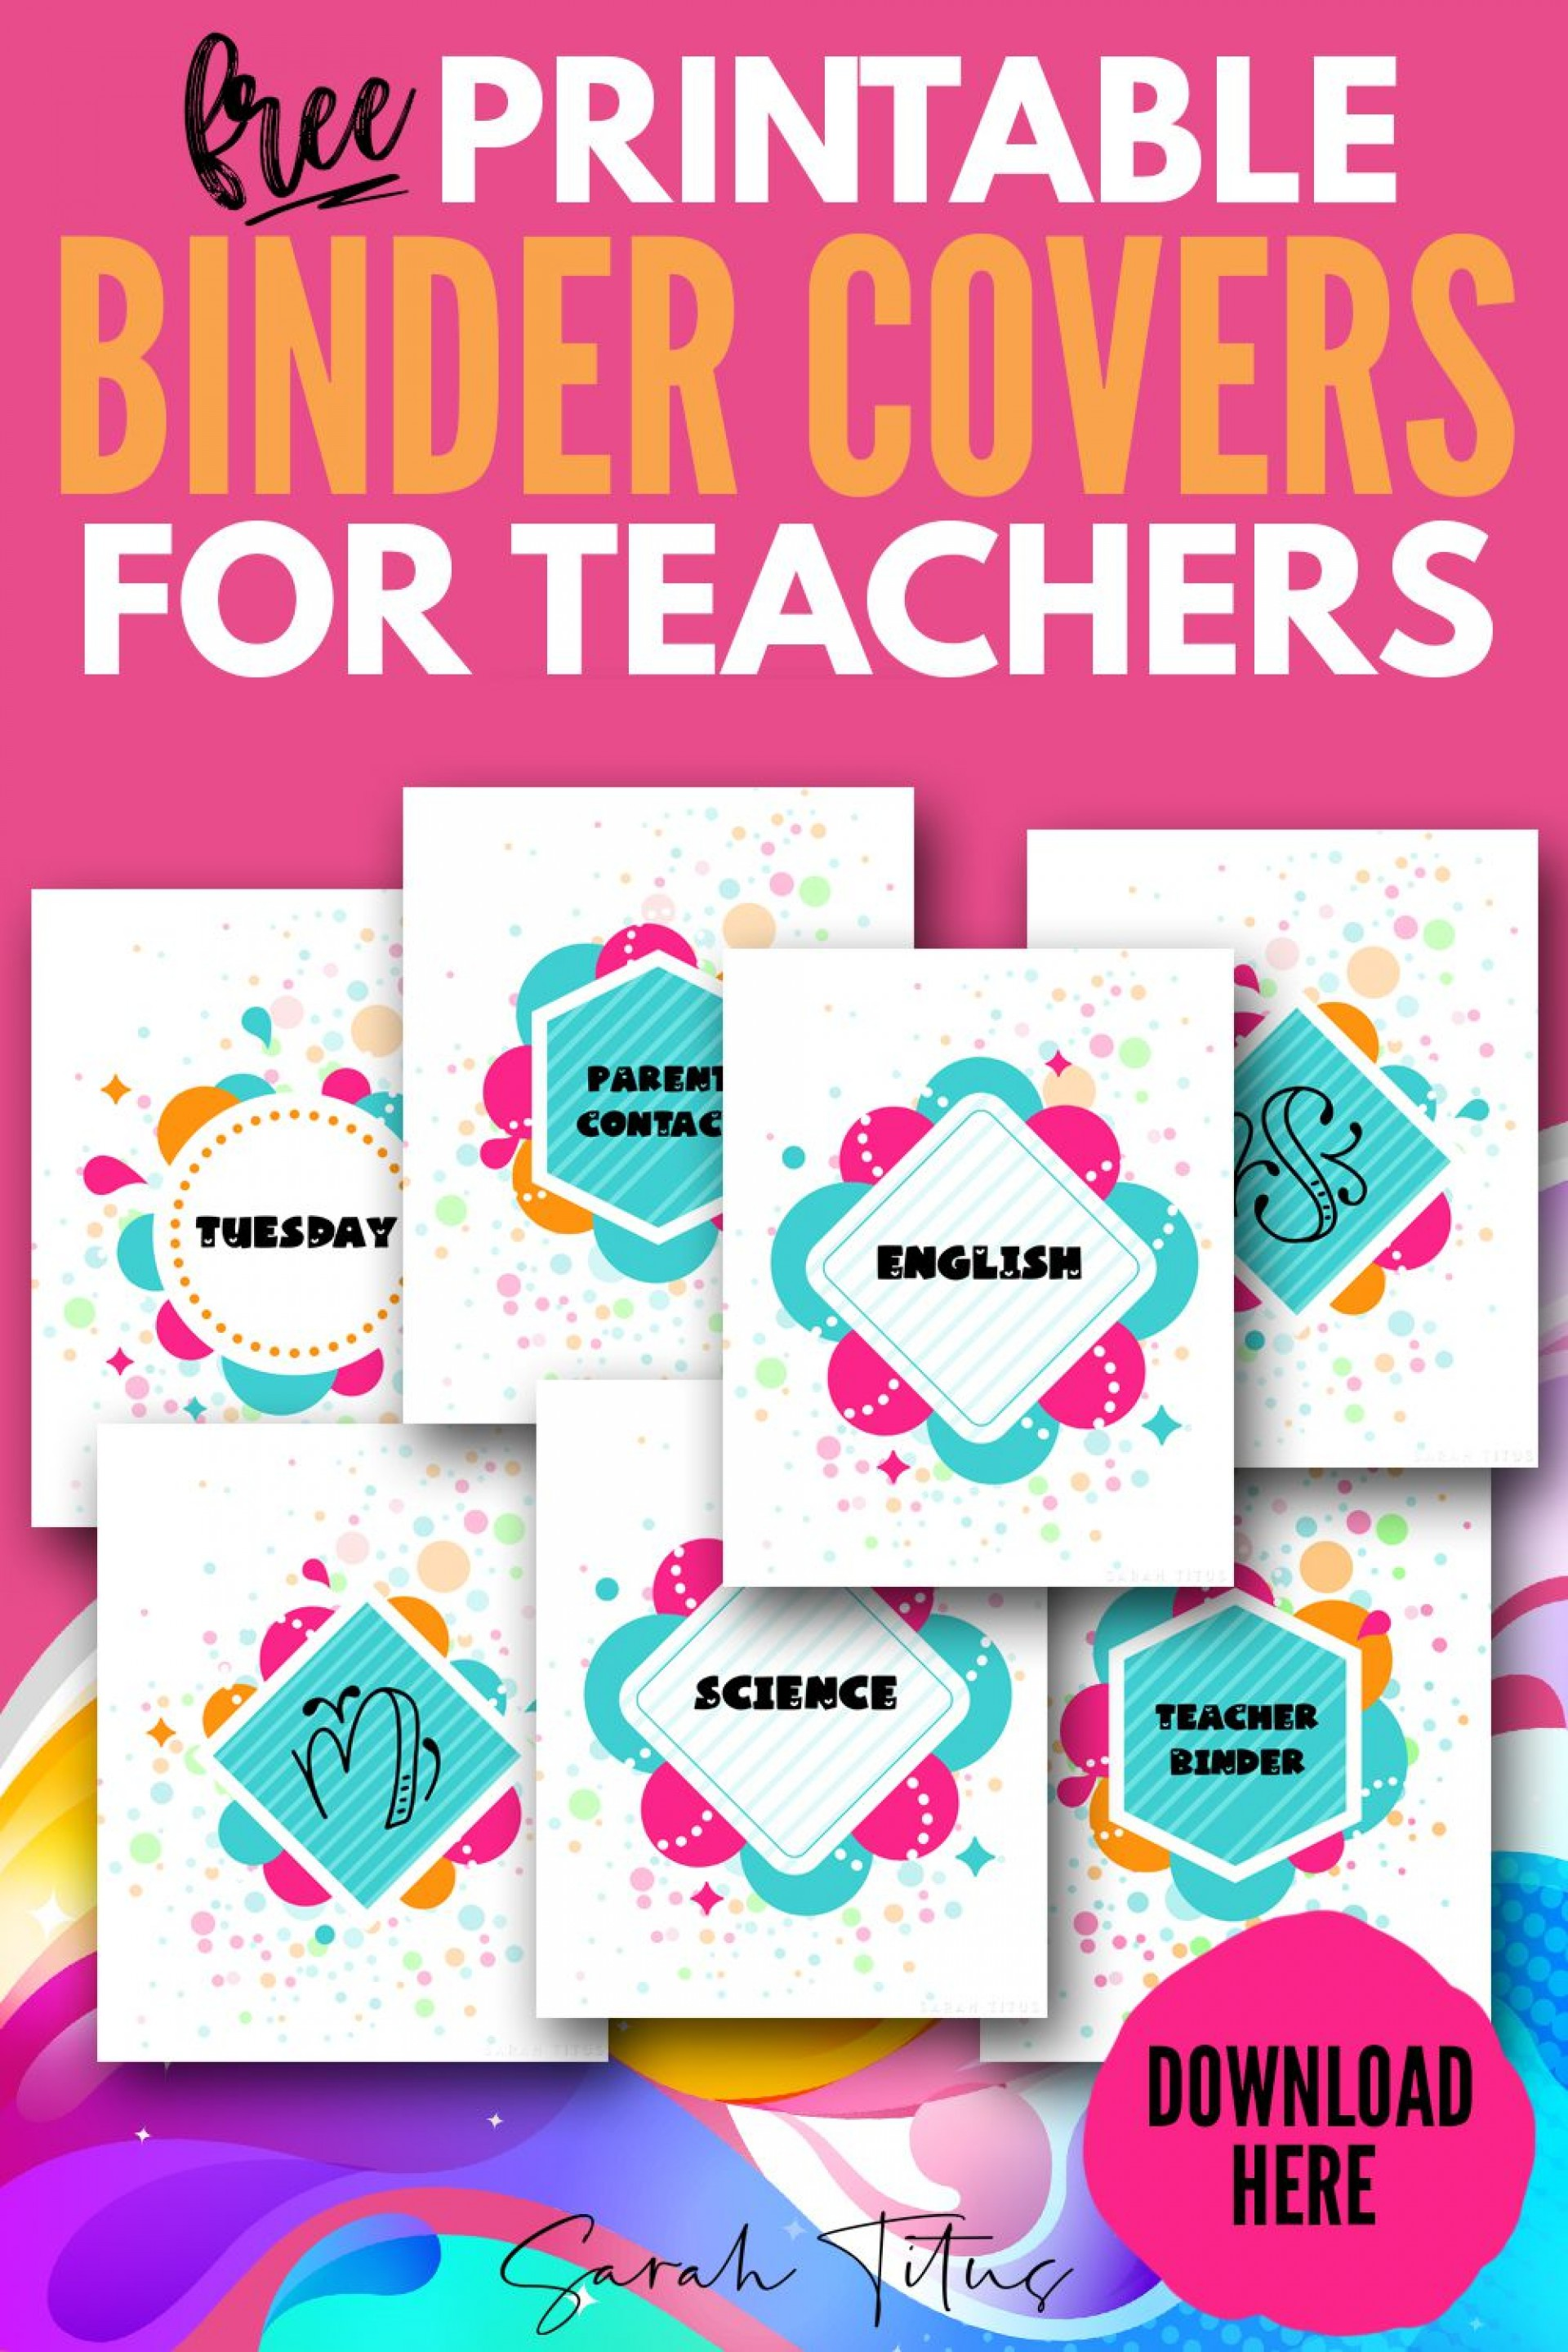 003 Fearsome Cute Binder Cover Template Free Printable Highest Clarity 1920